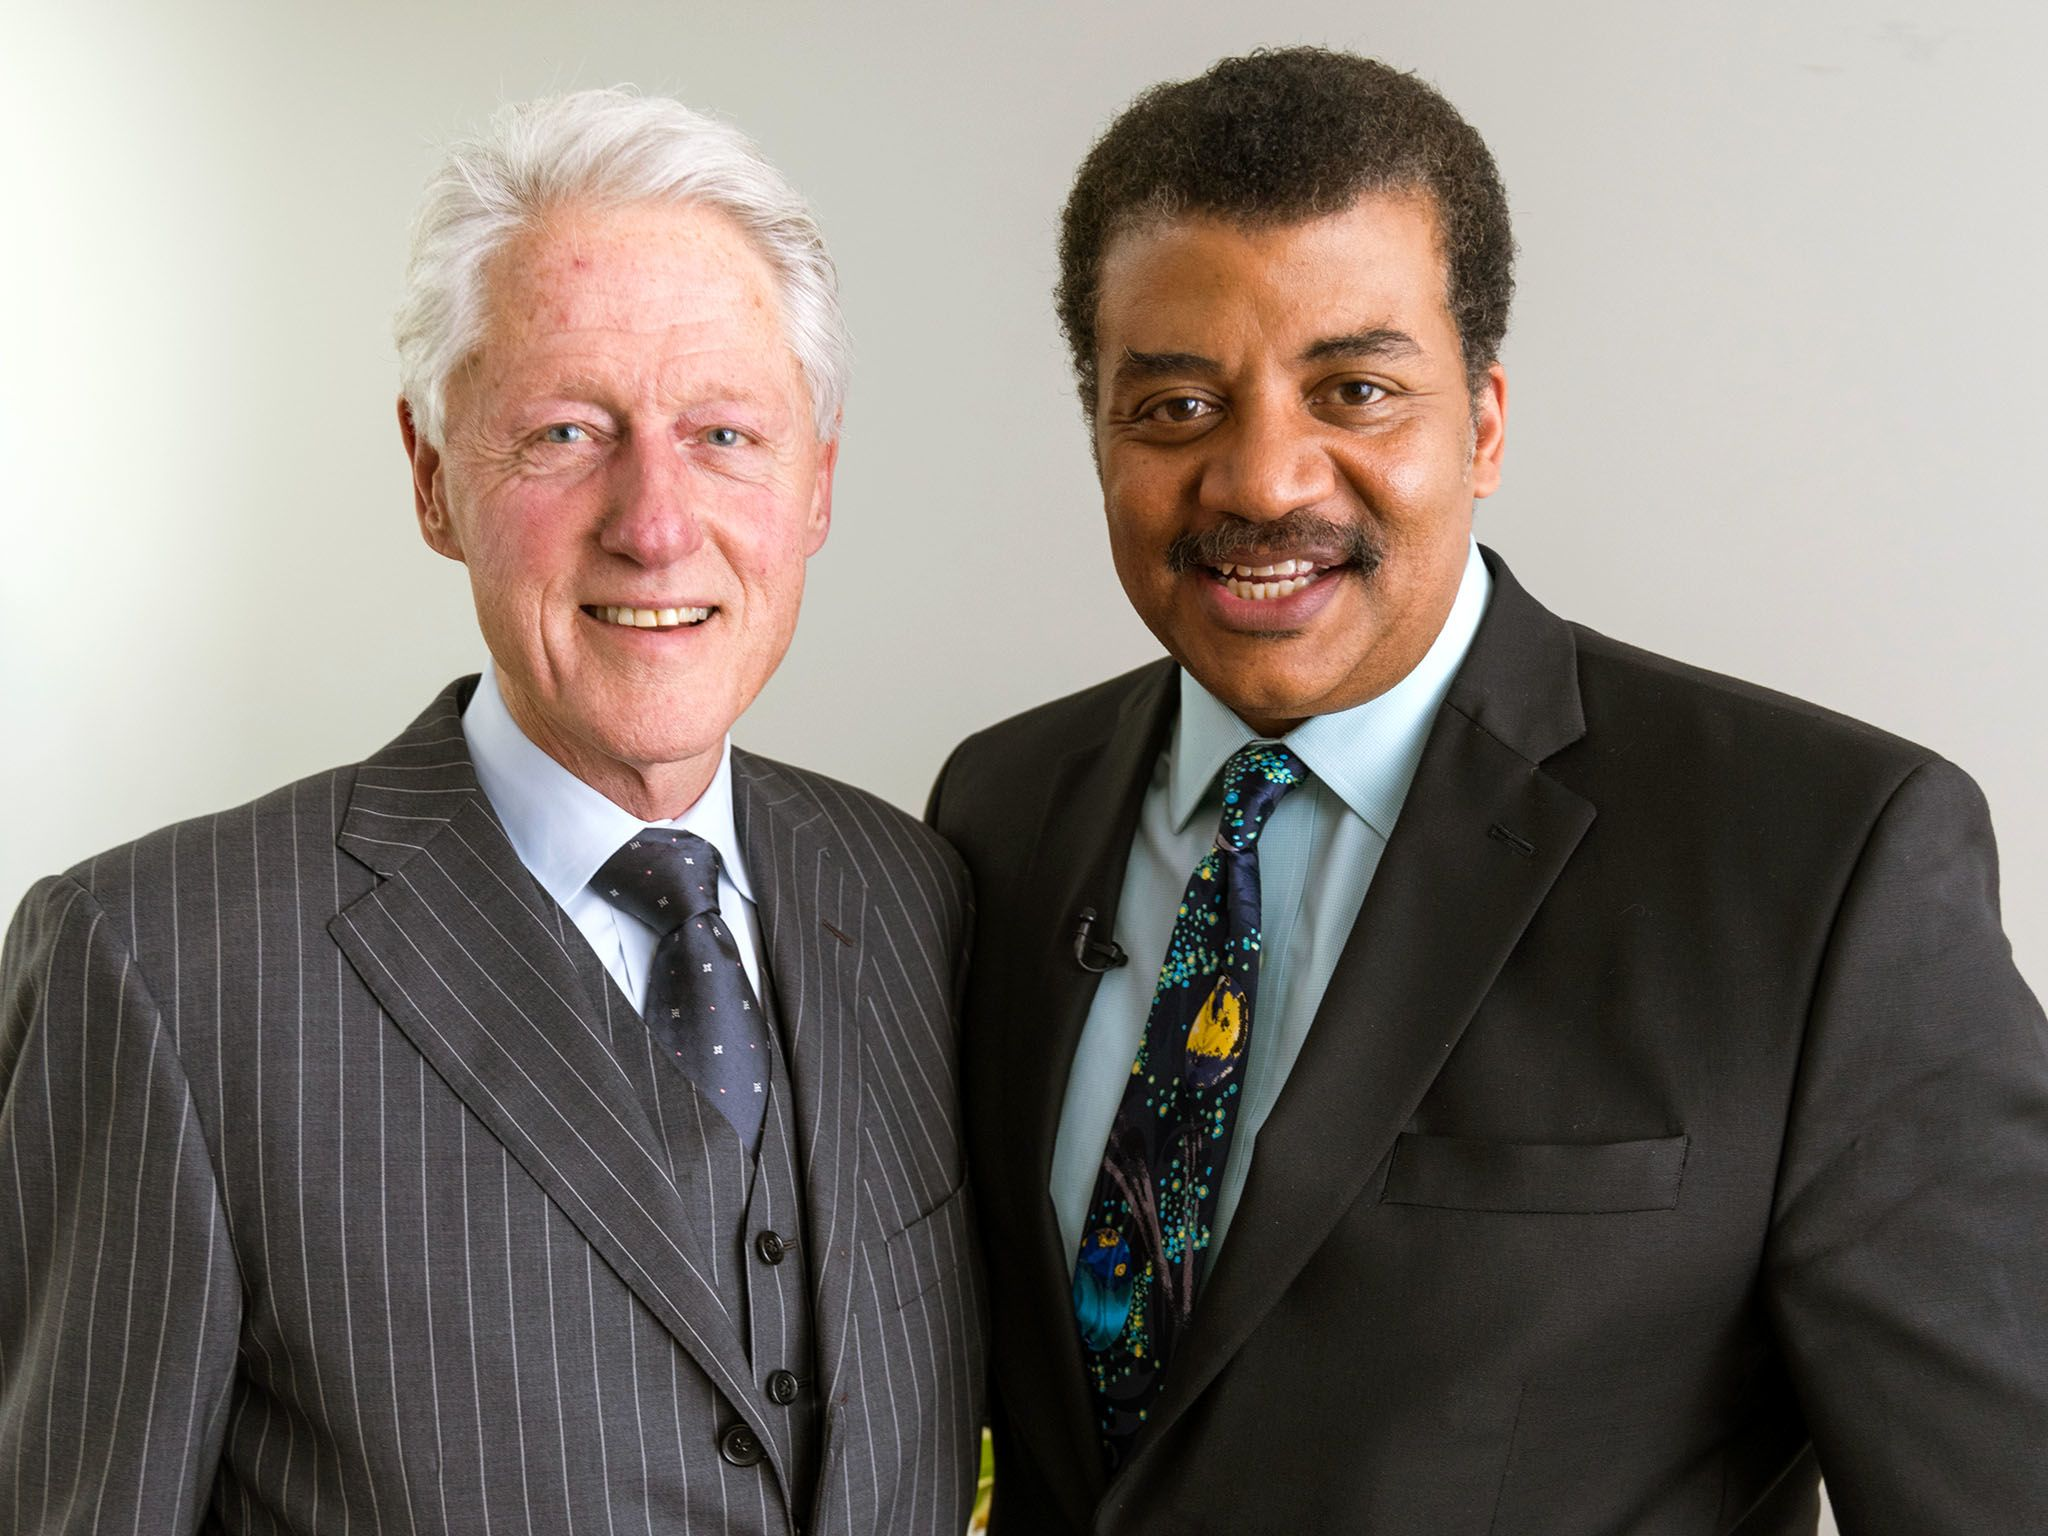 New York, N.Y.: Bill Clinton and Neil deGrasse Tyson. This image is from Startalk. [Photo of the day - January 2016]